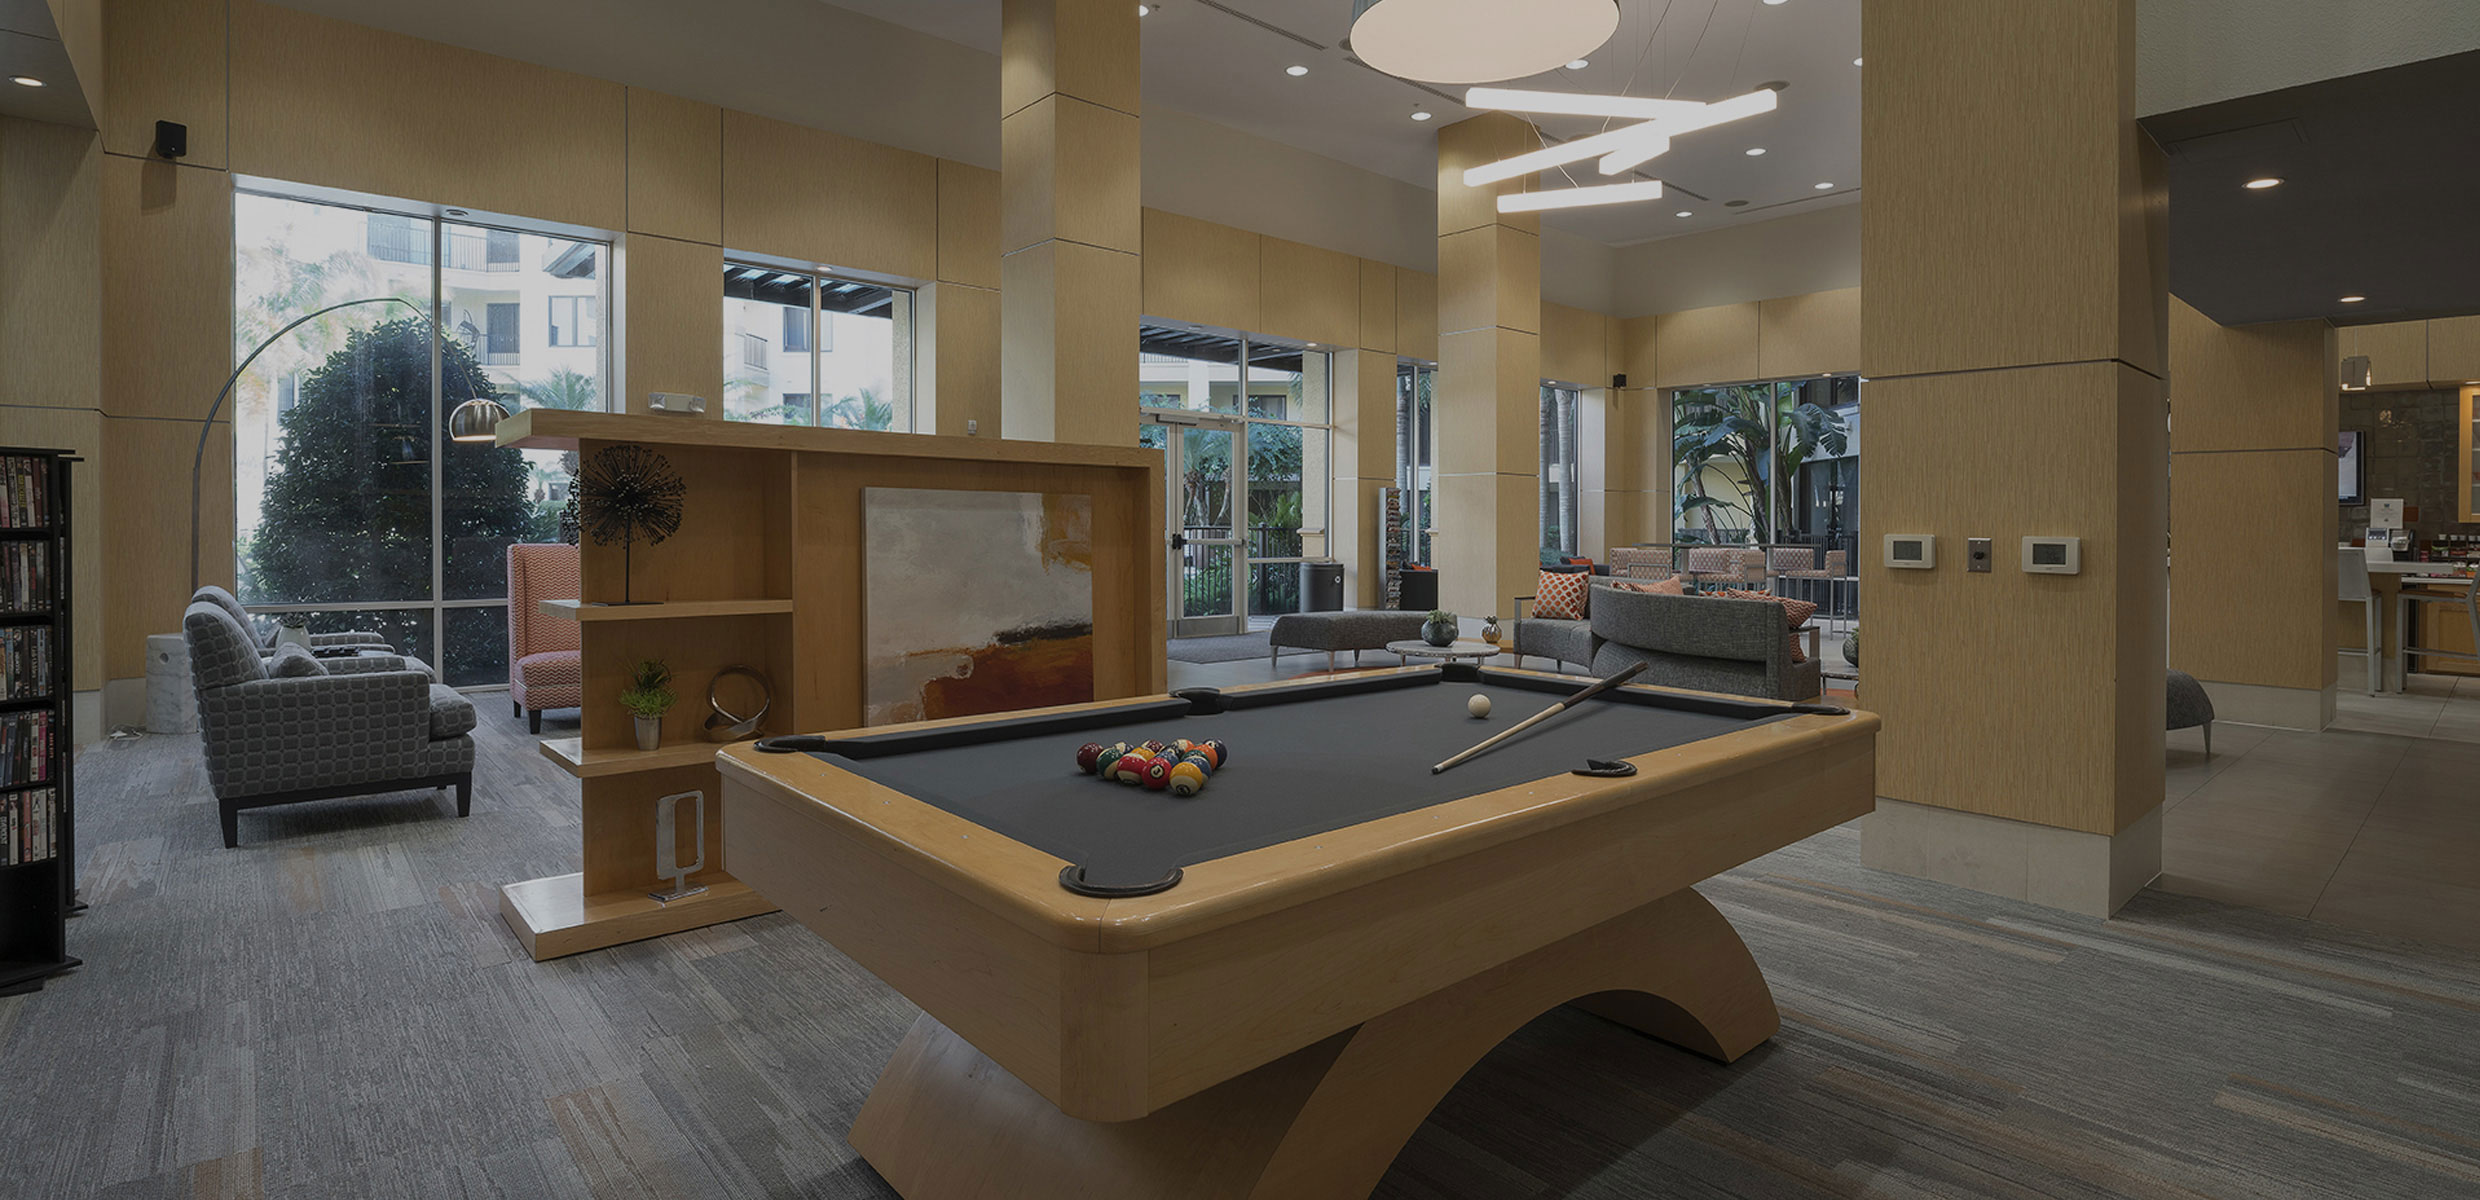 Dwell Maitland Pool Table in Clubhouse